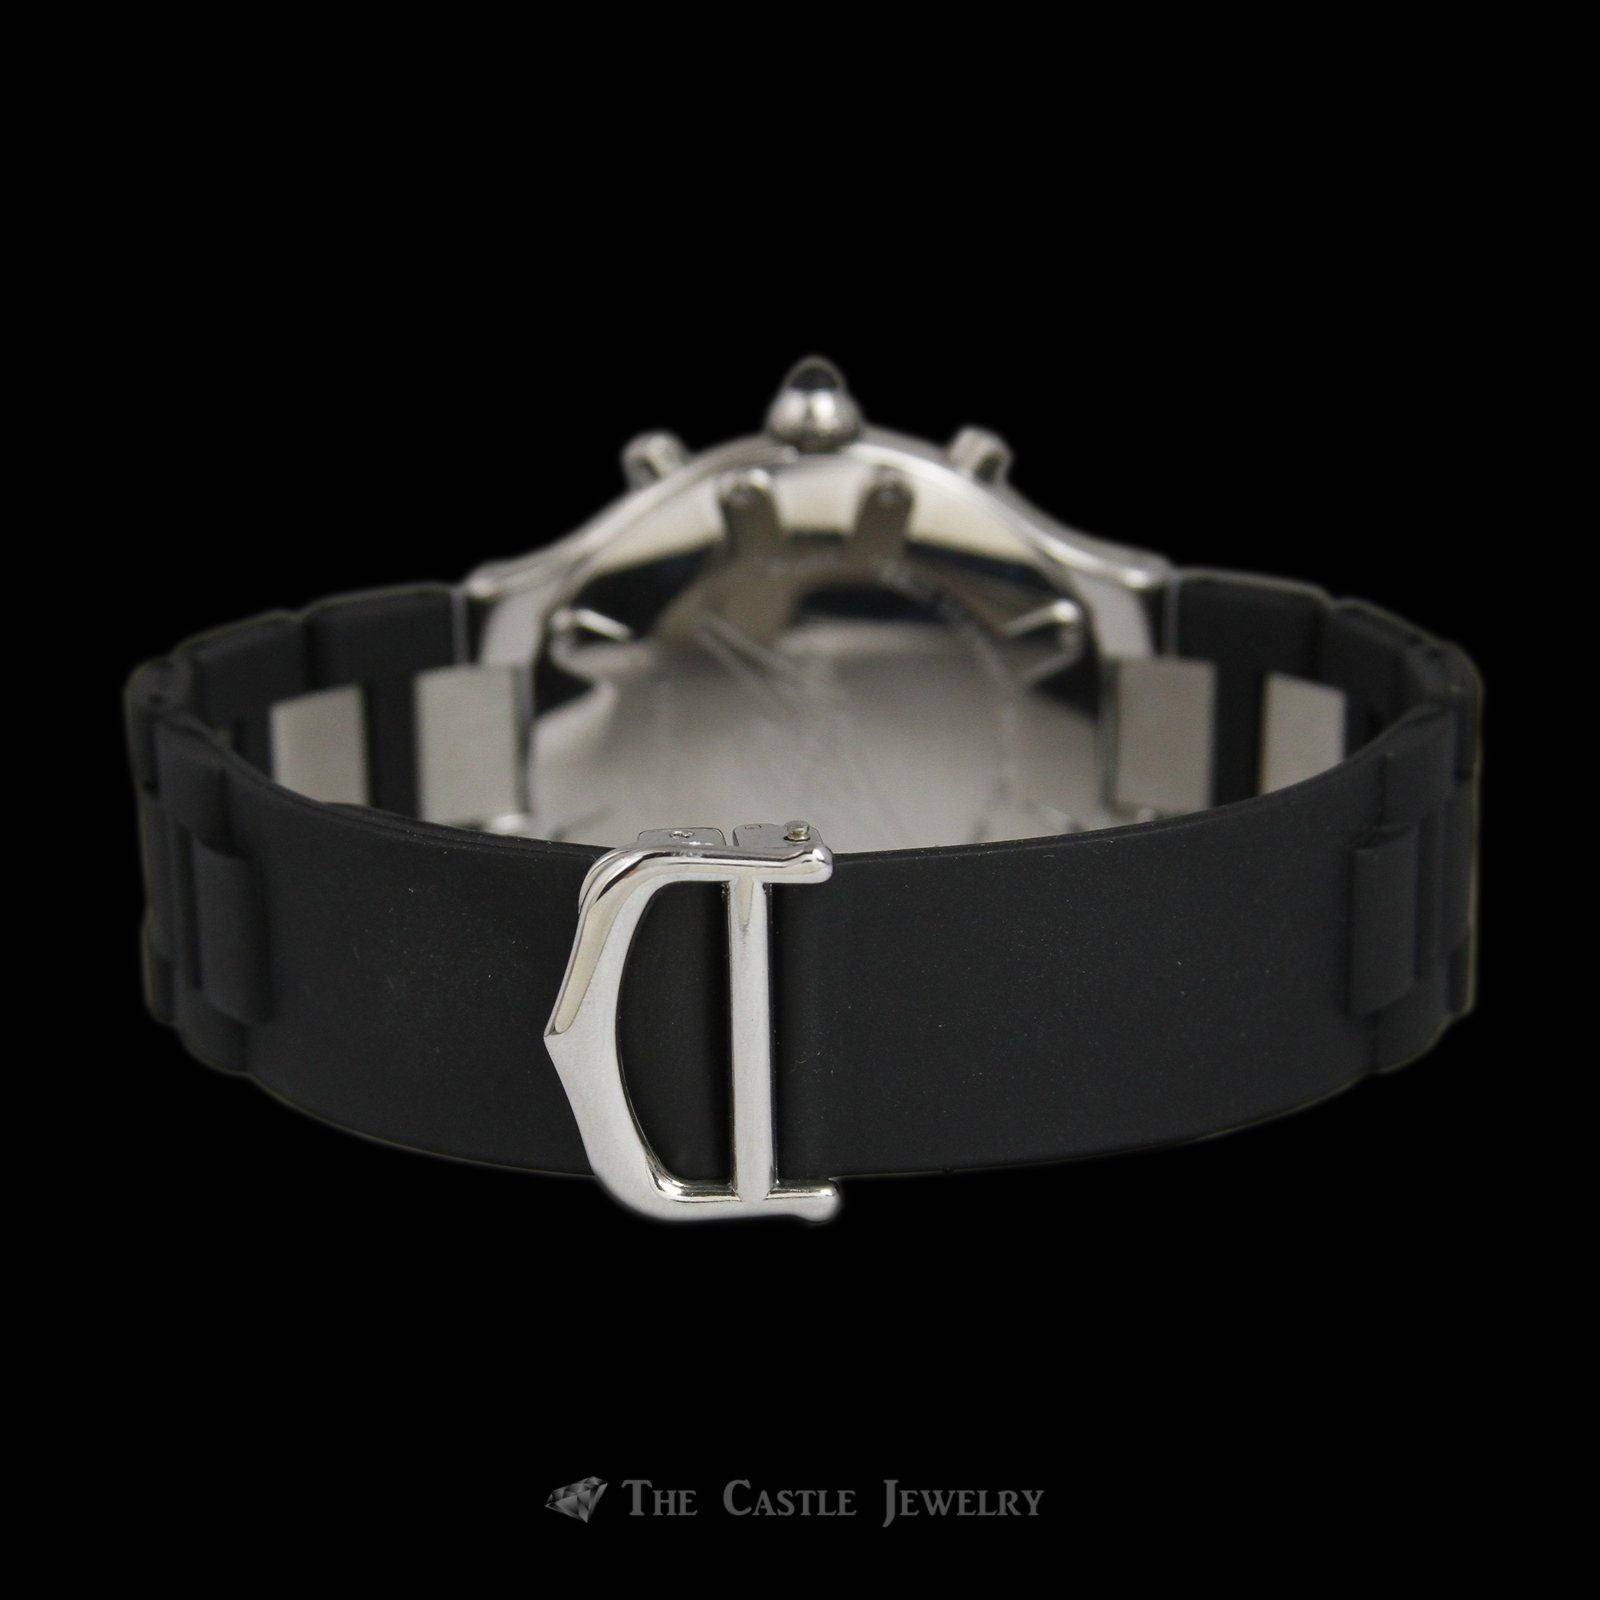 Authentic Cartier Watch w/ Black dial & Roman Numeral Bezel Rubber & Stainless Strap